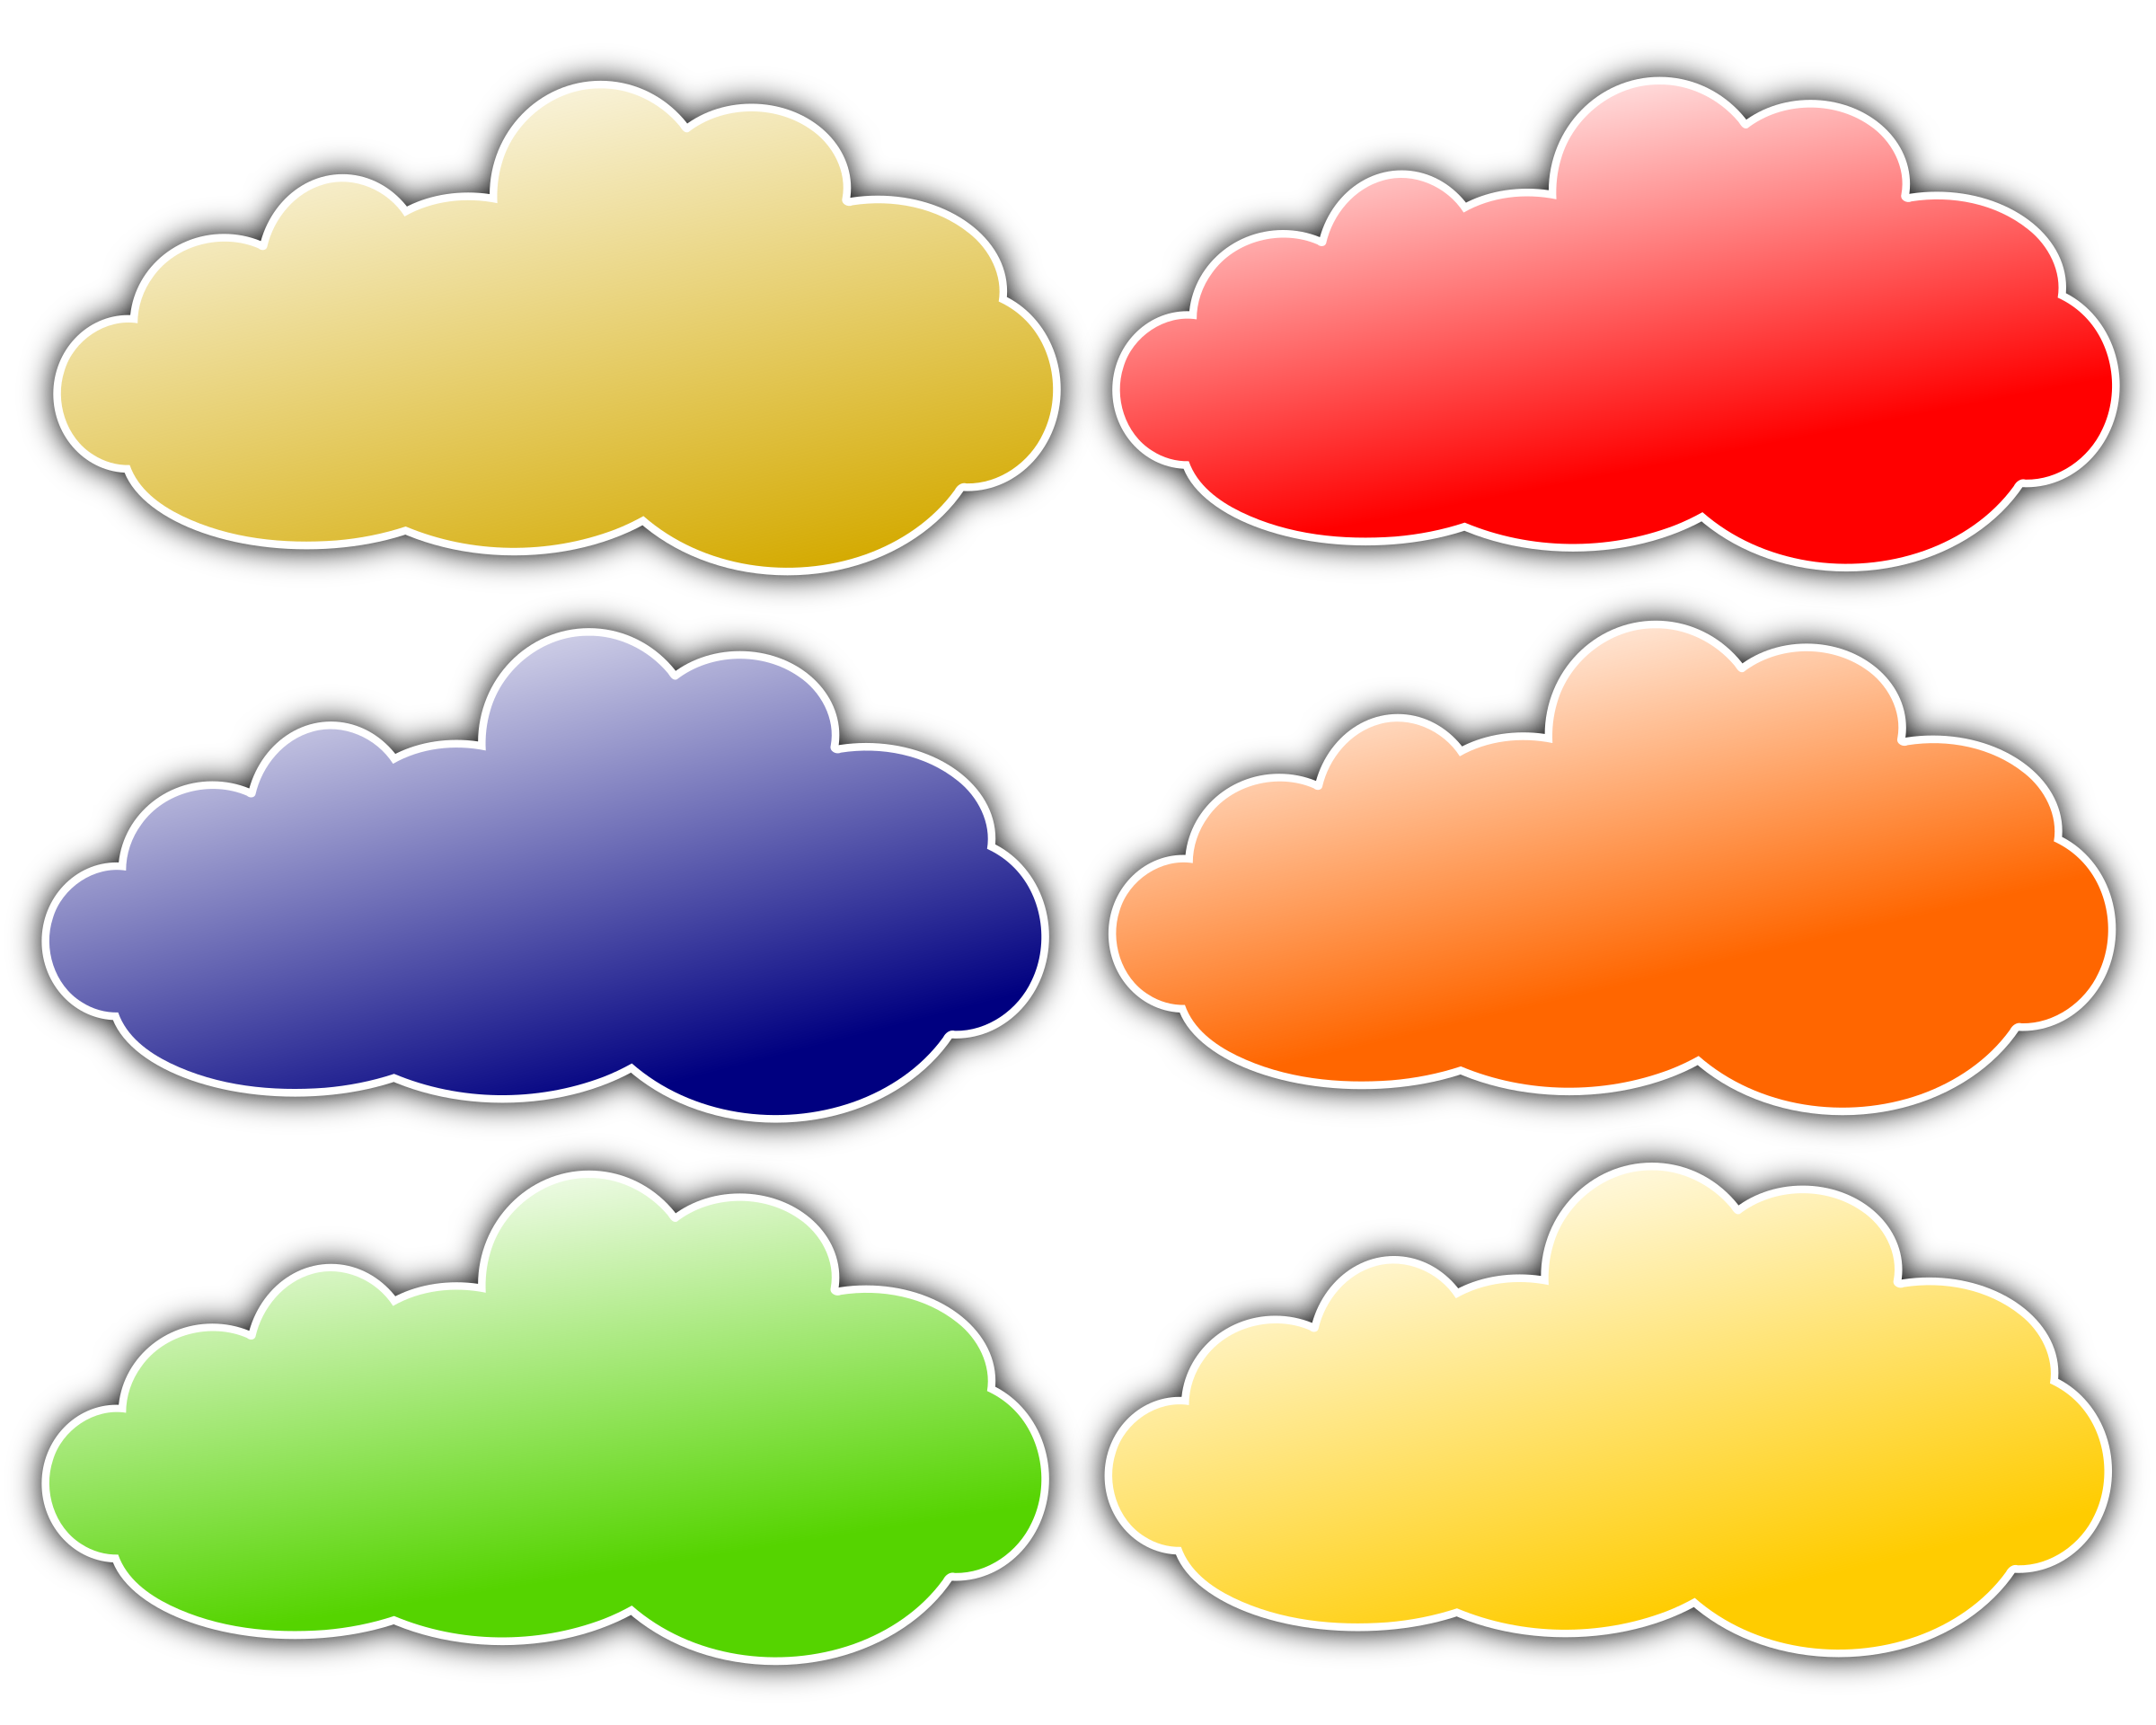 Colour Clouds by inky2010